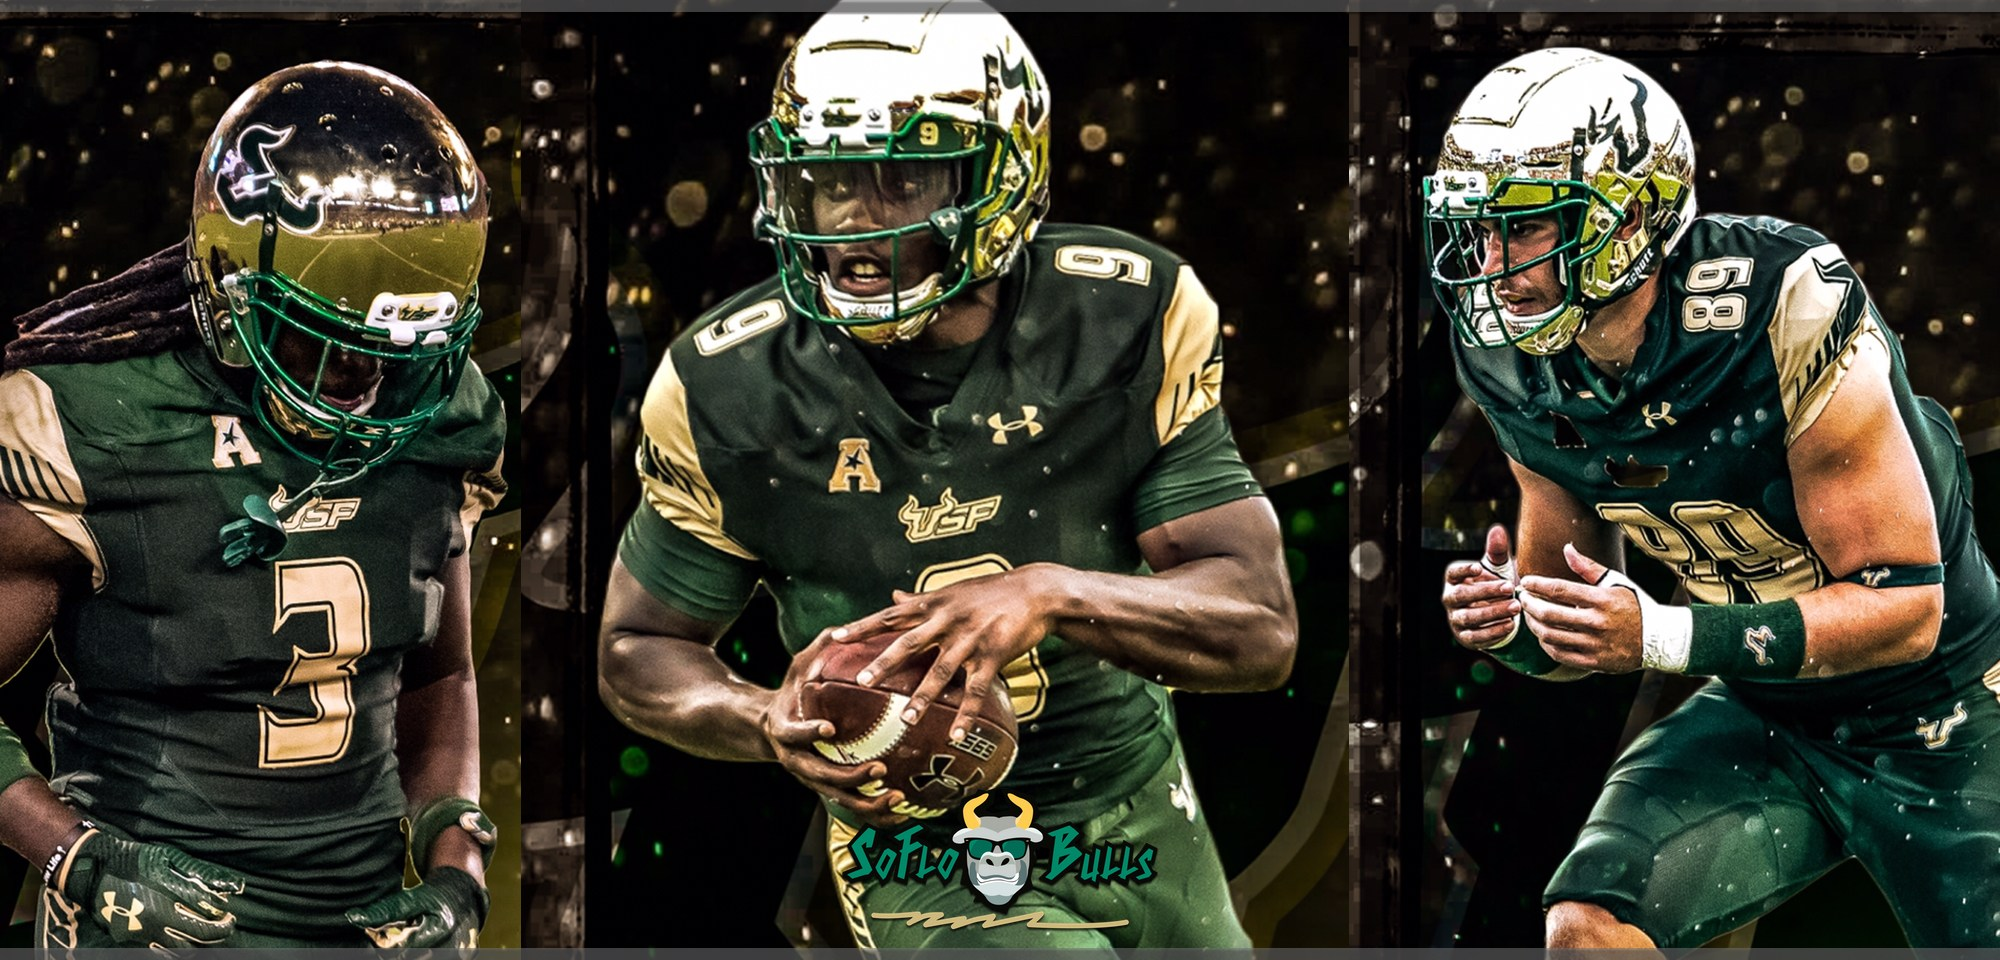 2018 SoFloBulls.com USF Bulls Football Quinton Flowers Deatrick Nichols Mitchell Wilcox Archives Featured Image (2400x960)